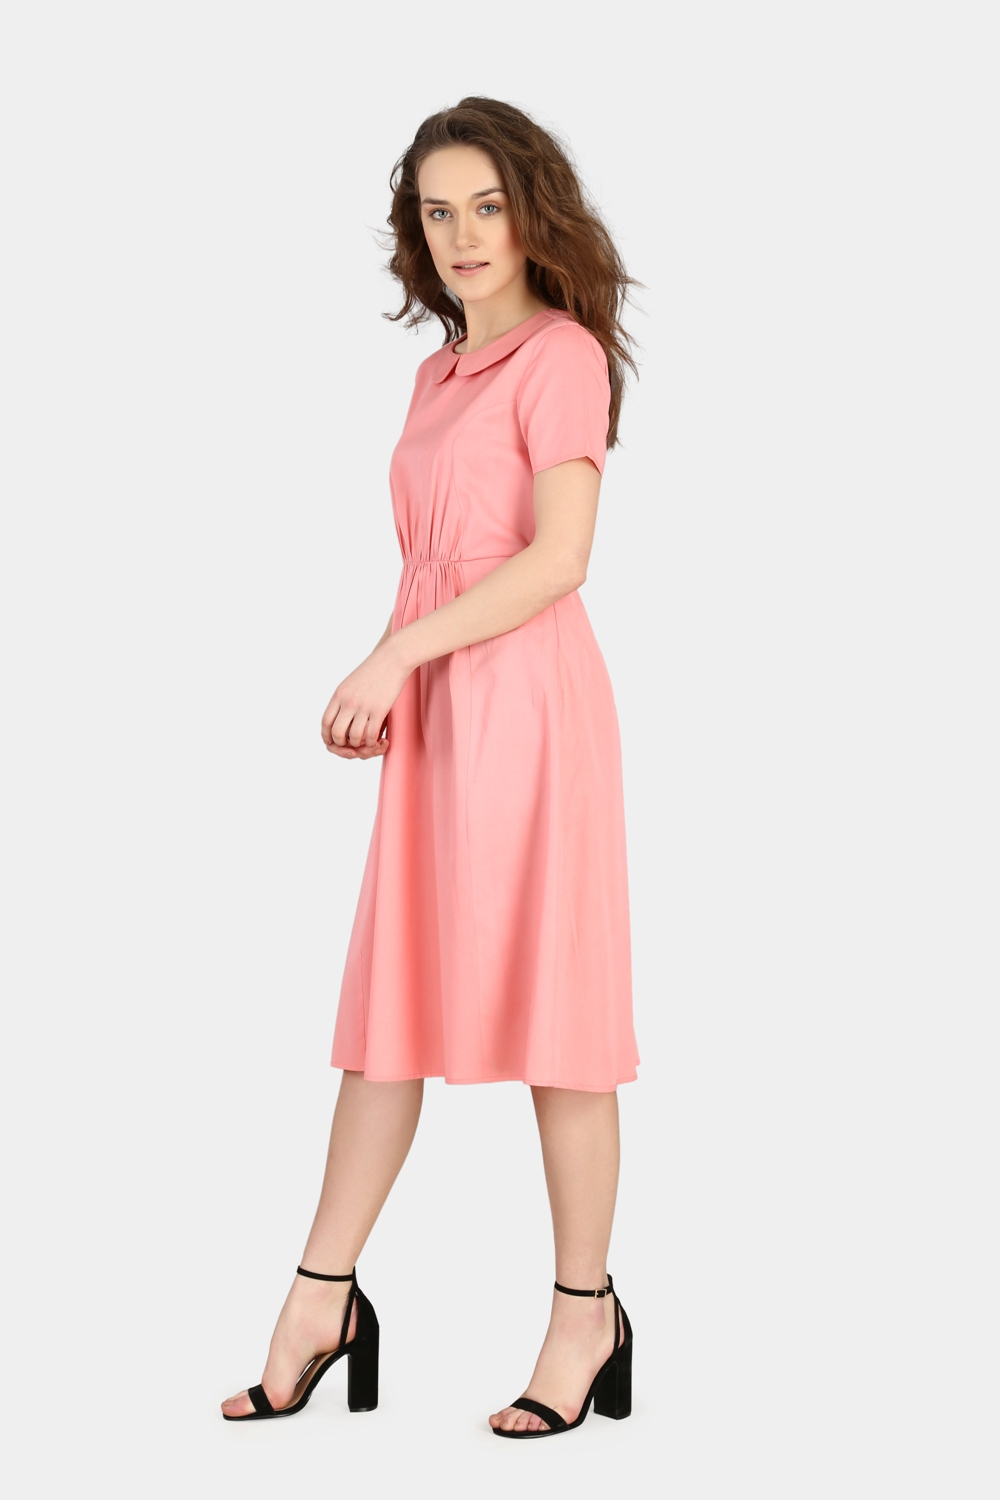 Peter Pan Gathered Corporate Dress -2